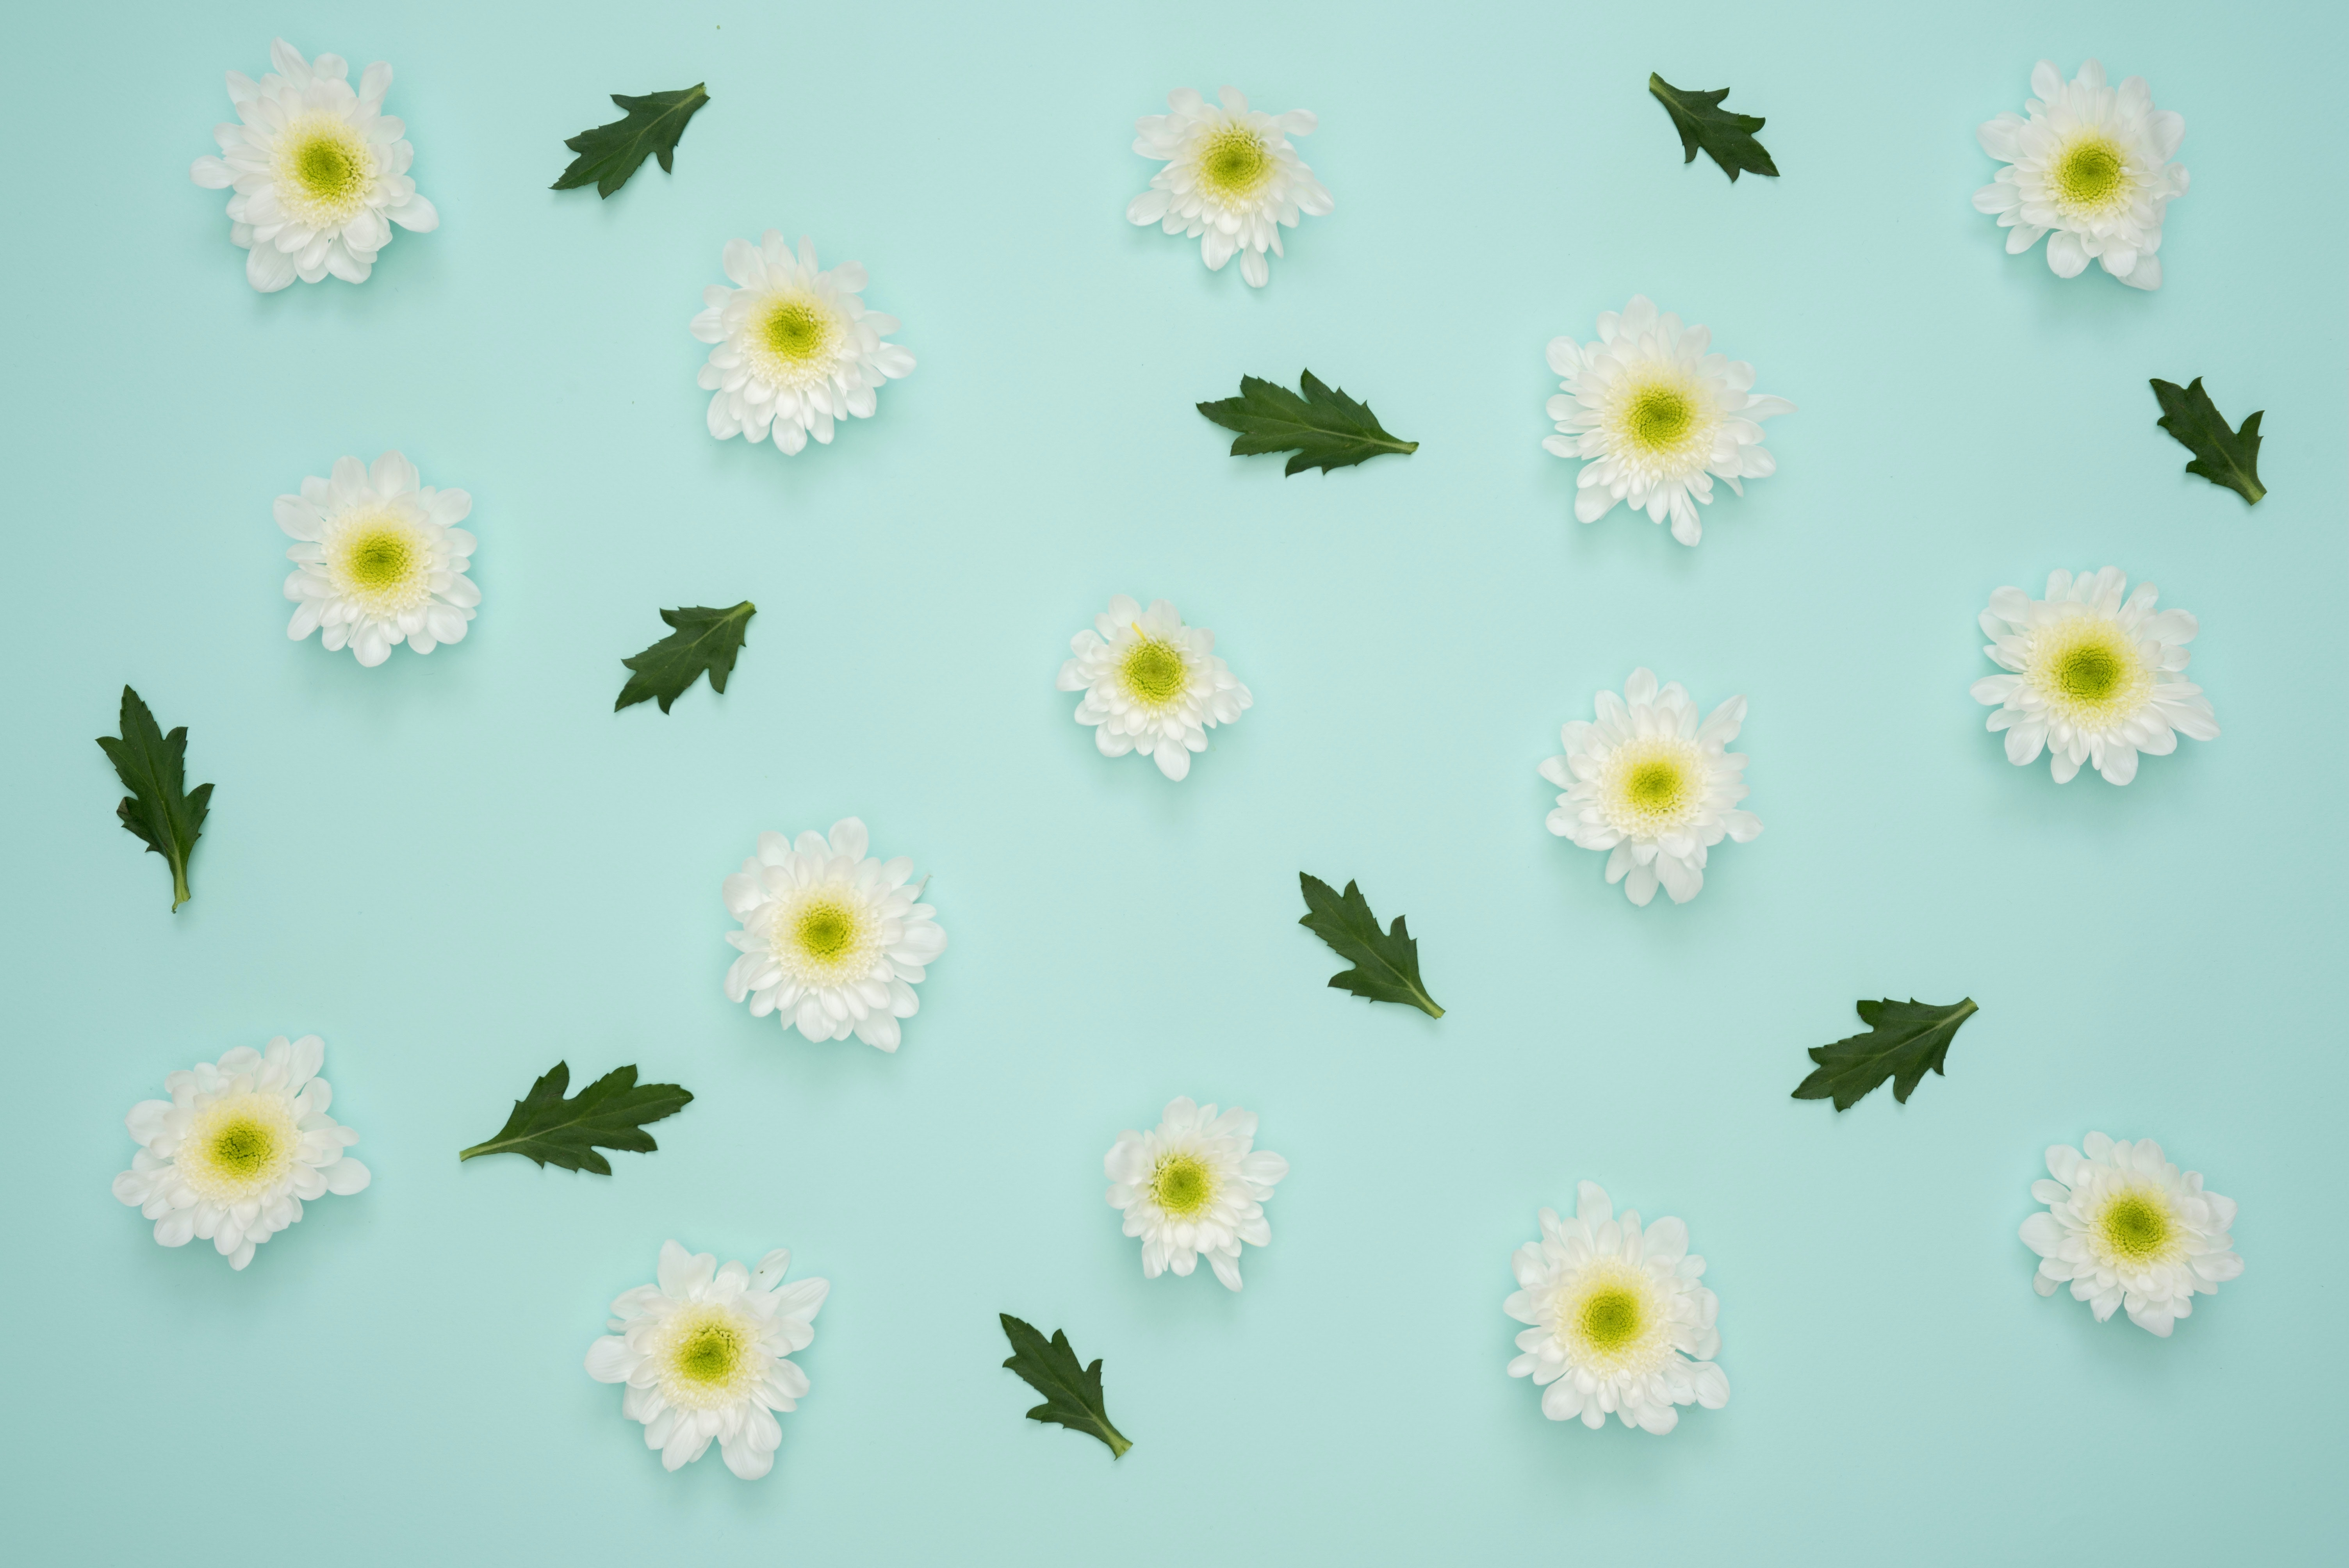 White Flowers And Leaves Decor Free Stock Photo